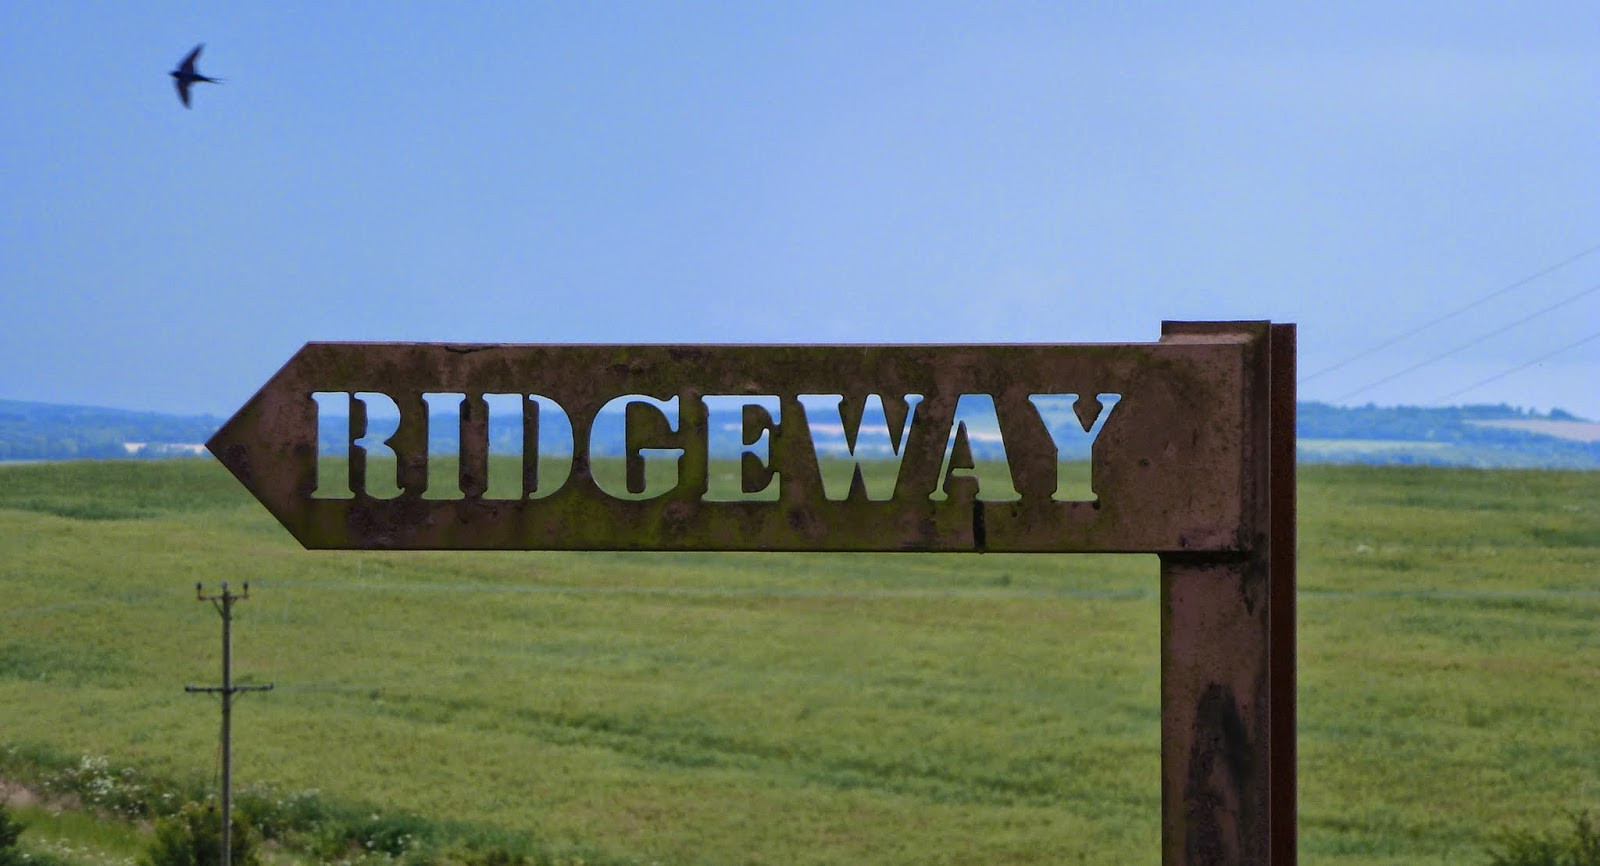 sign Ridgeway by Smeathes Ridge